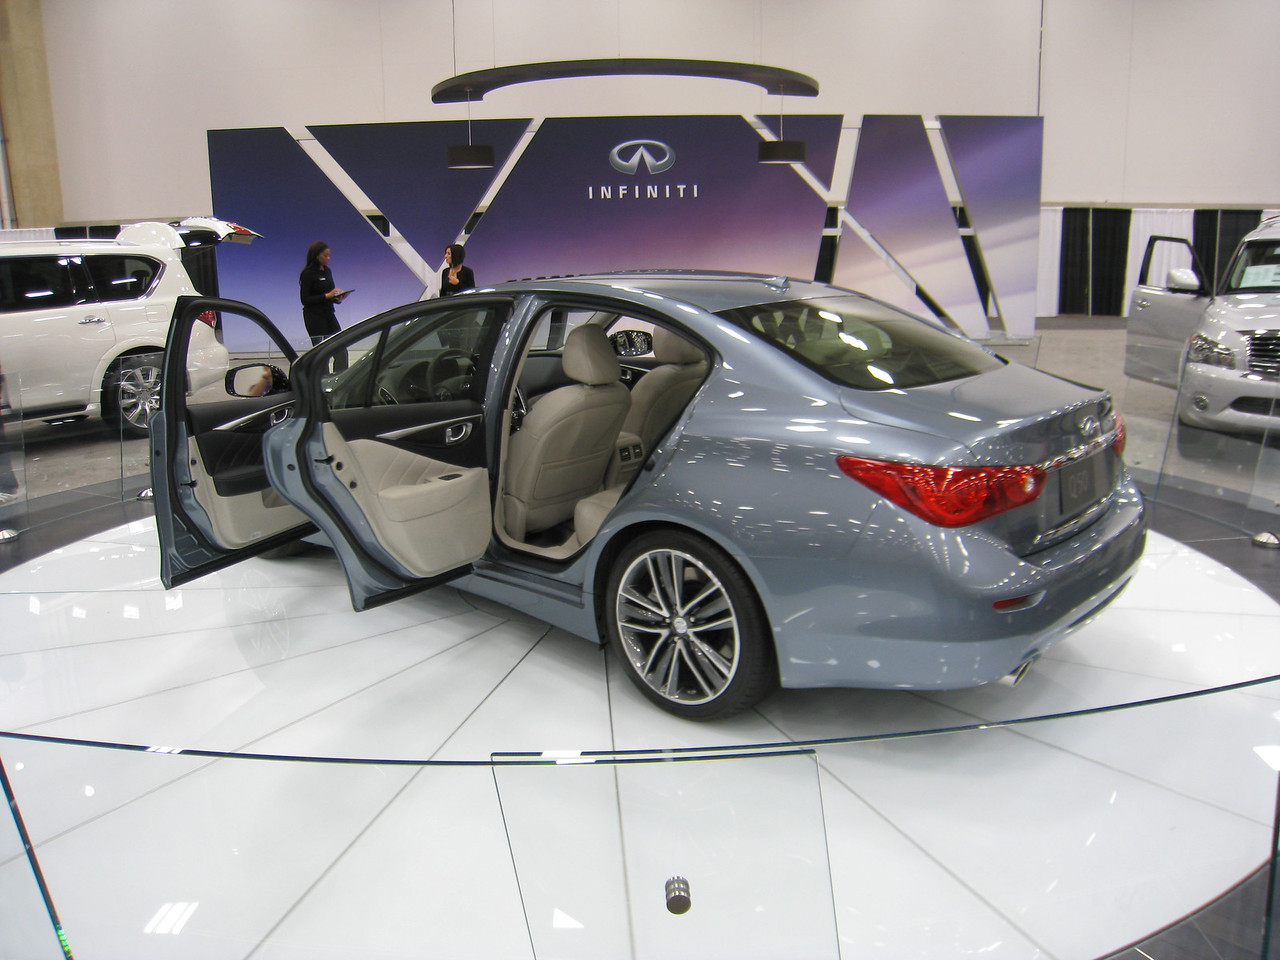 Infiniti Q50 (formerly called G37)